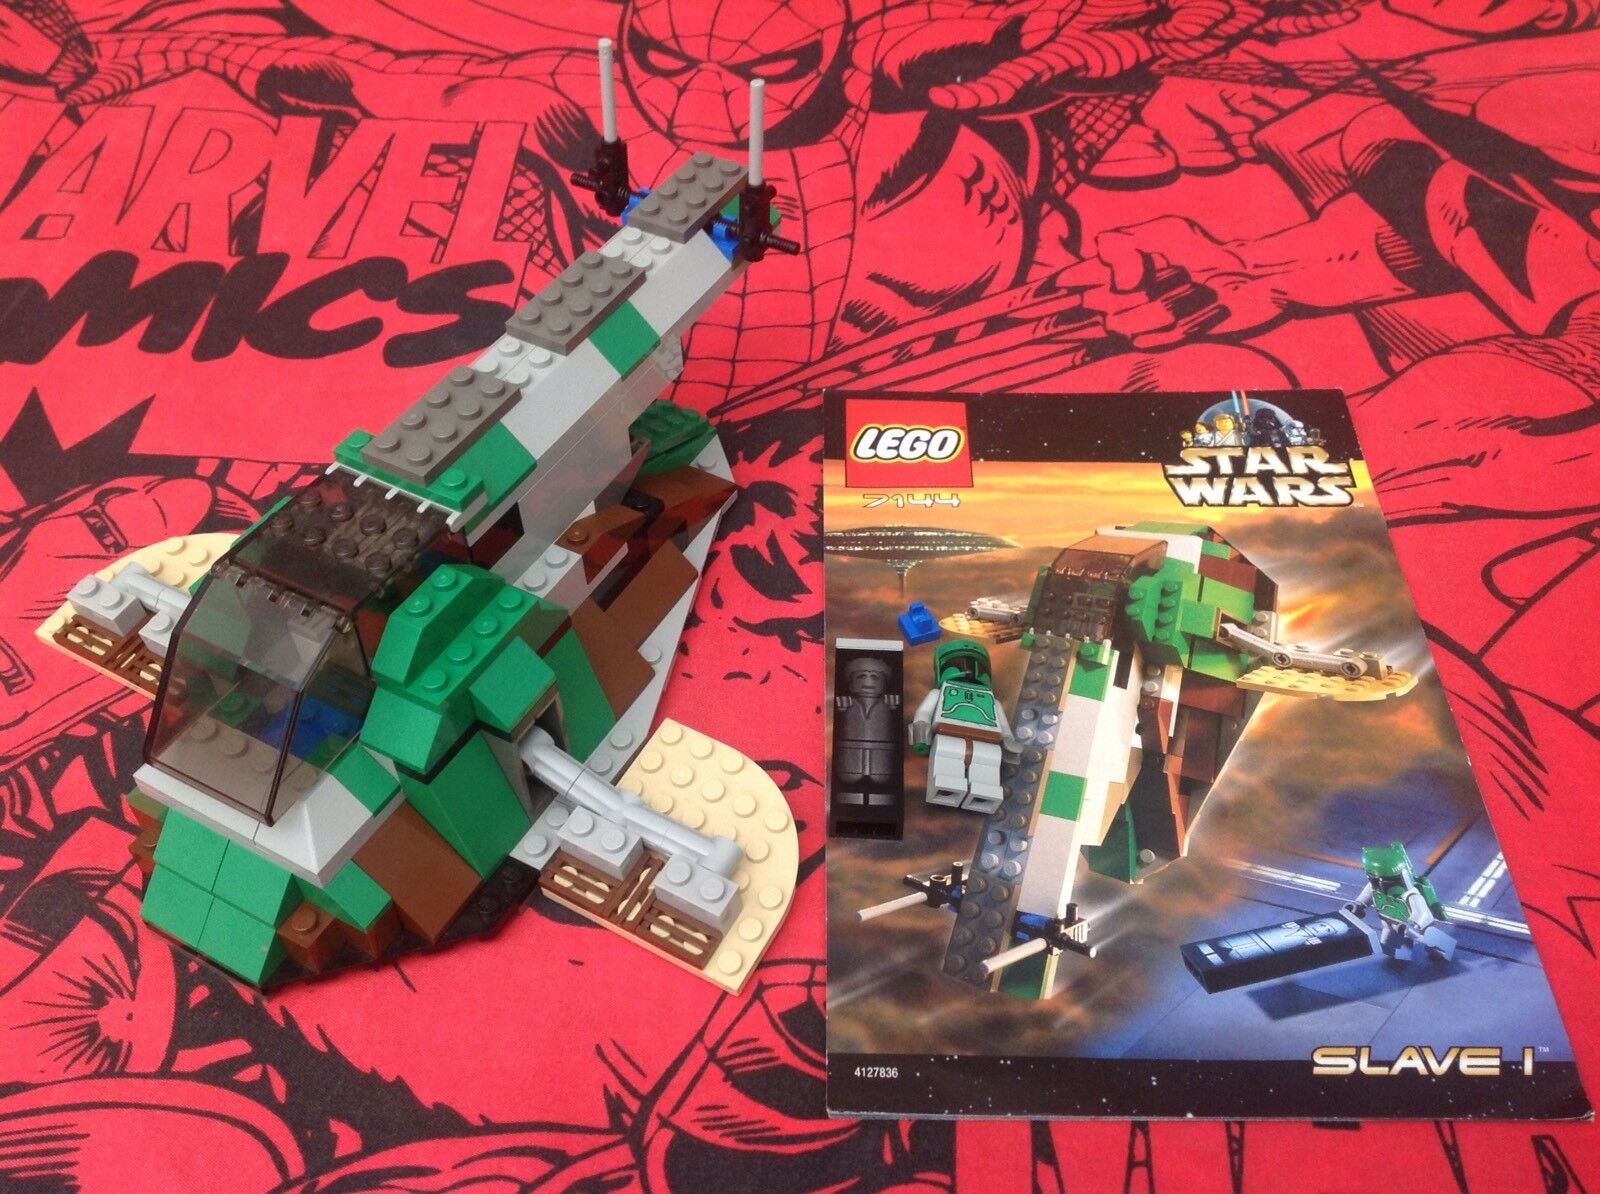 Vintage Lego Star Wars 7144 Slave 1 Complete With Instructions & Minifigures